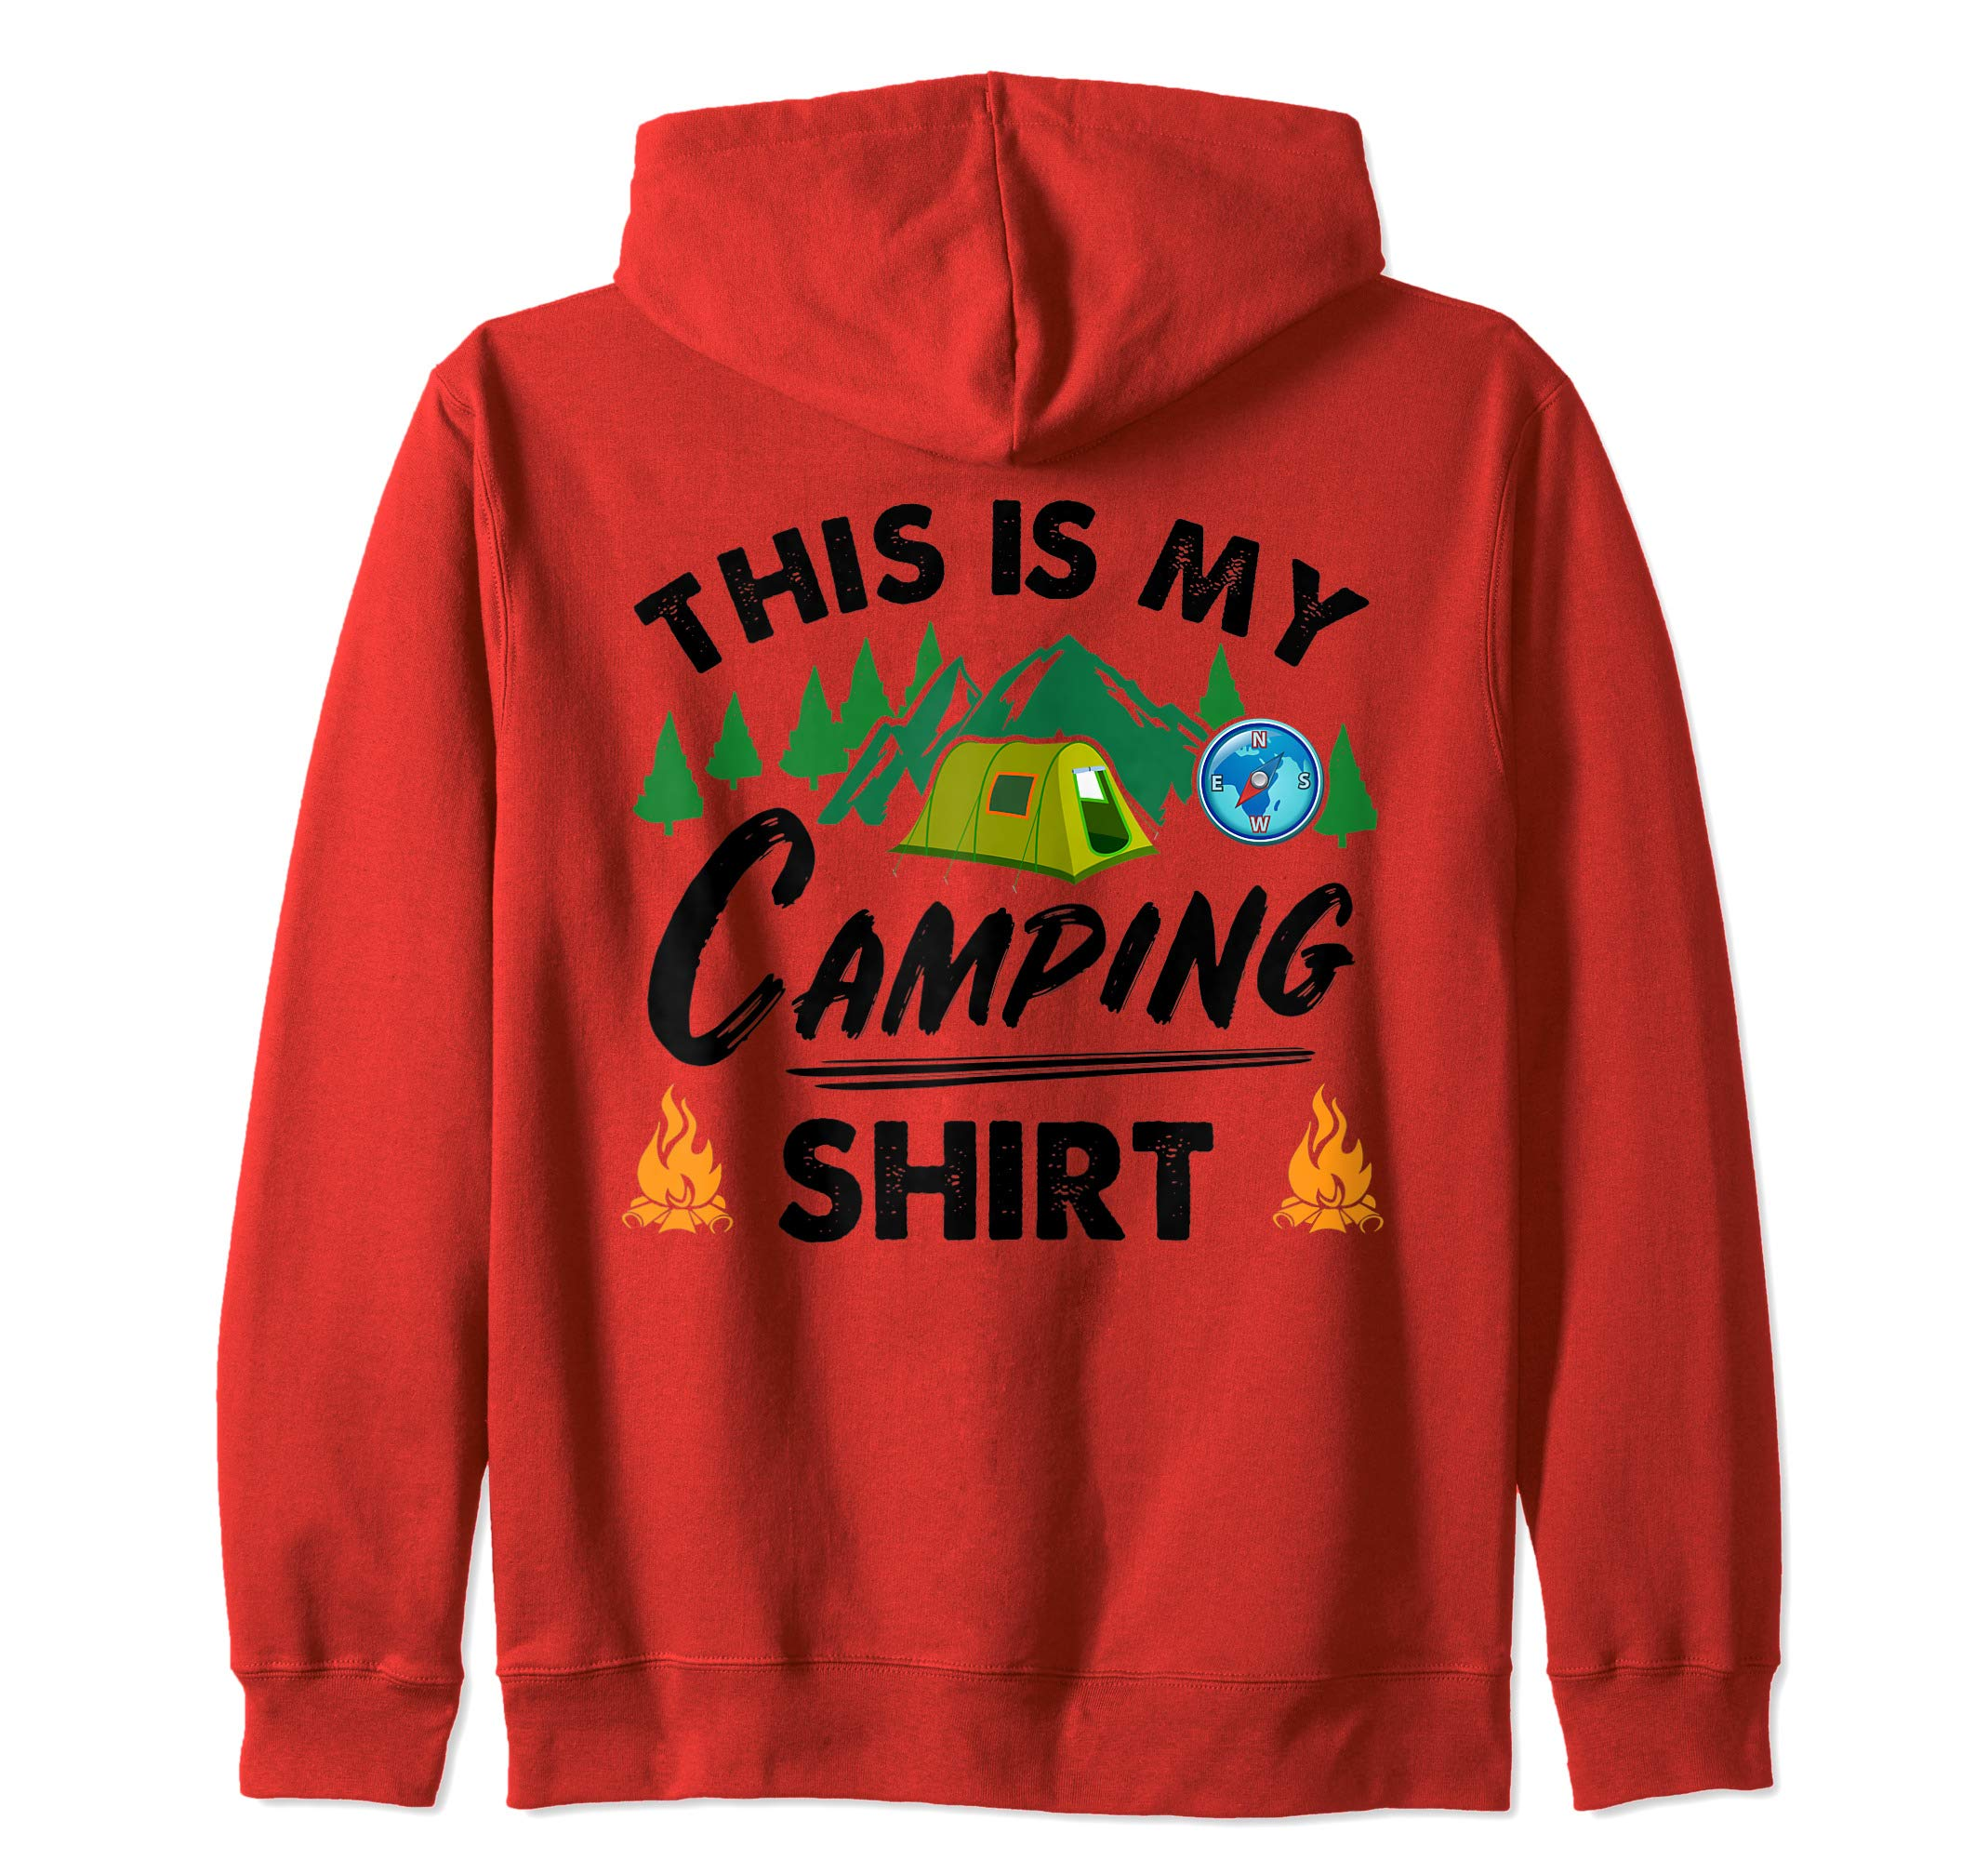 This Is My Camping Shirt Funny Camper Gift Zip Hoodie by Funny Camping Gifts Tizy Apparel